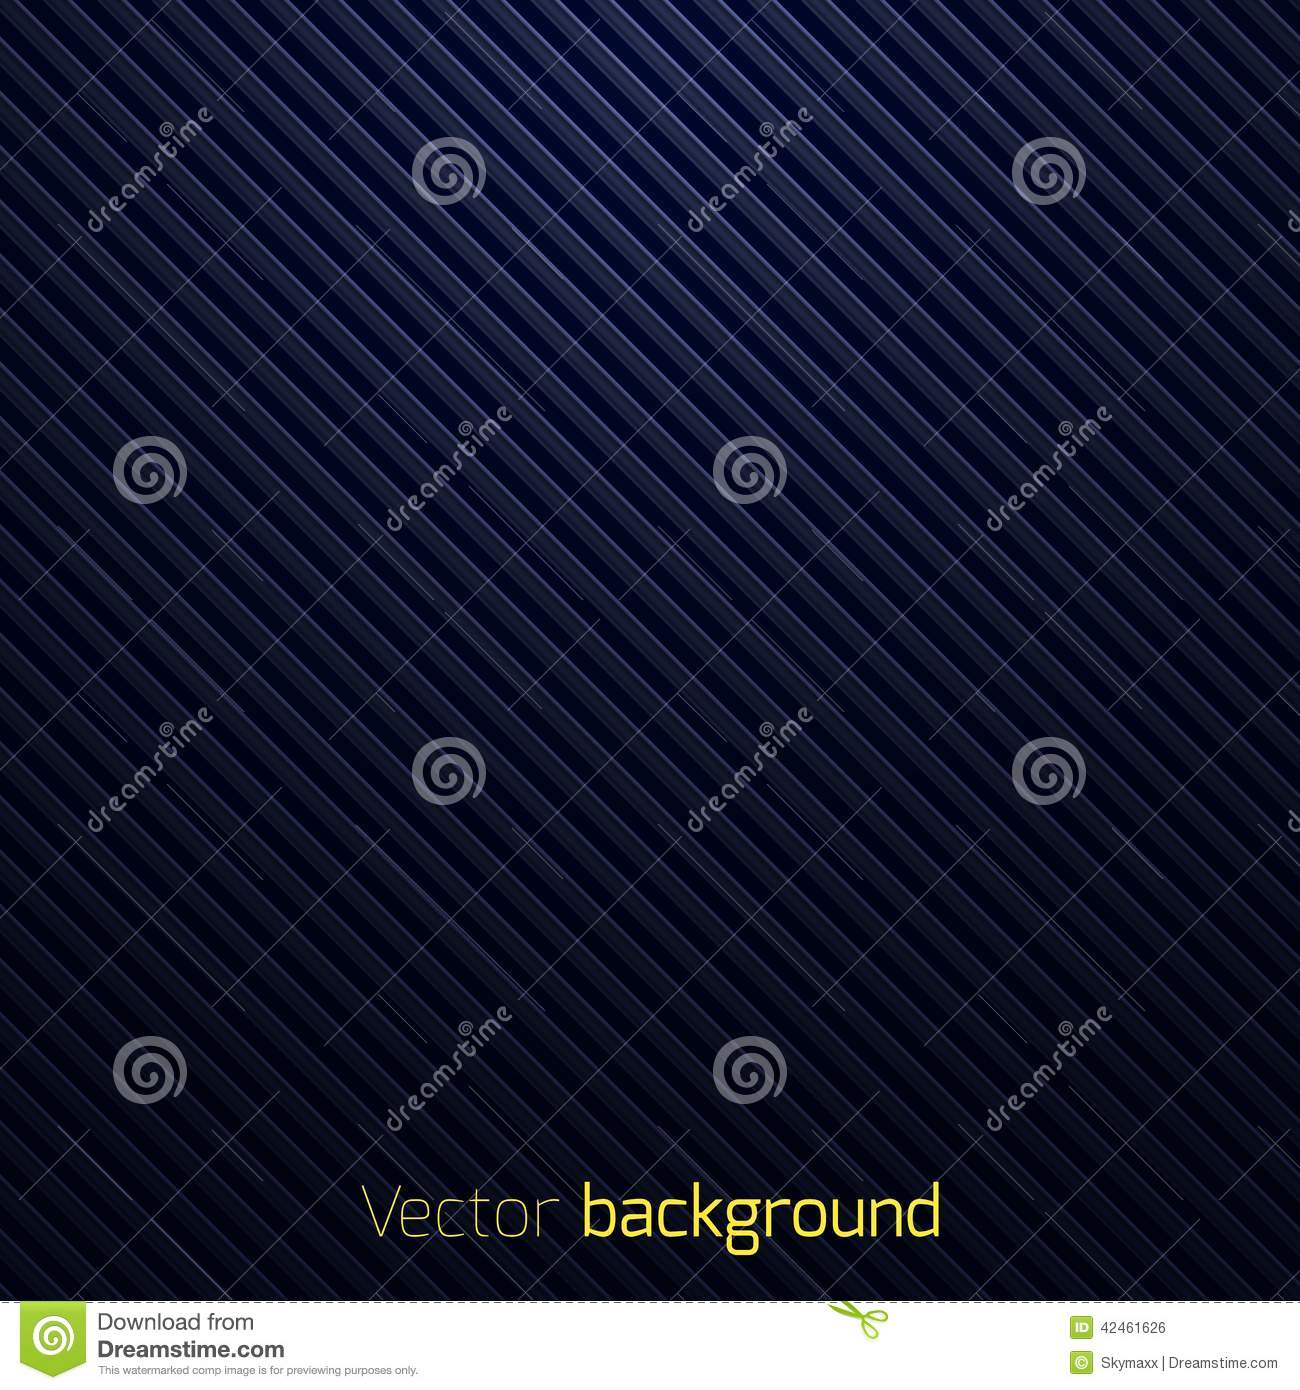 Abstract Dark Blue Striped Background Stock Vector - Image ...